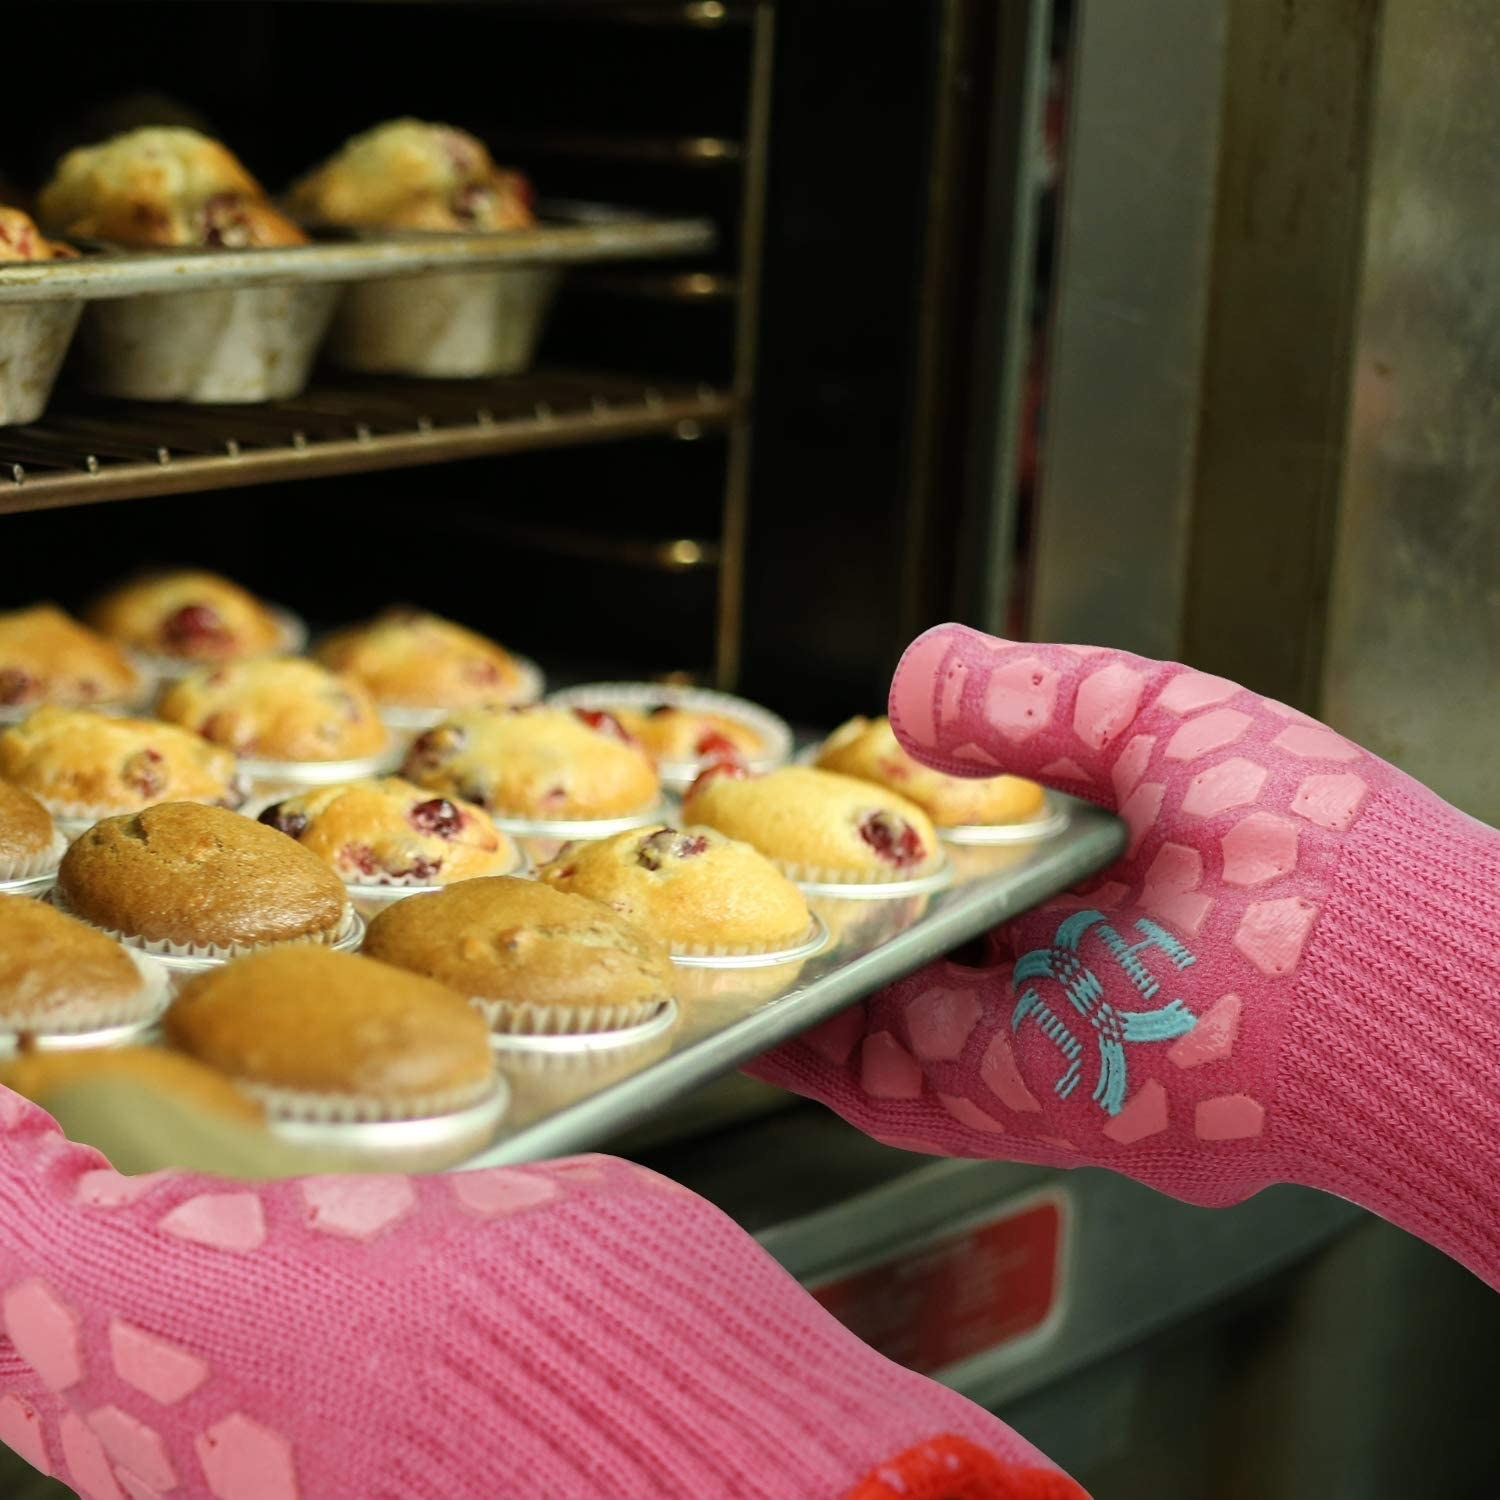 A person wearing the gloves while taking a pan of muffins out of the oven